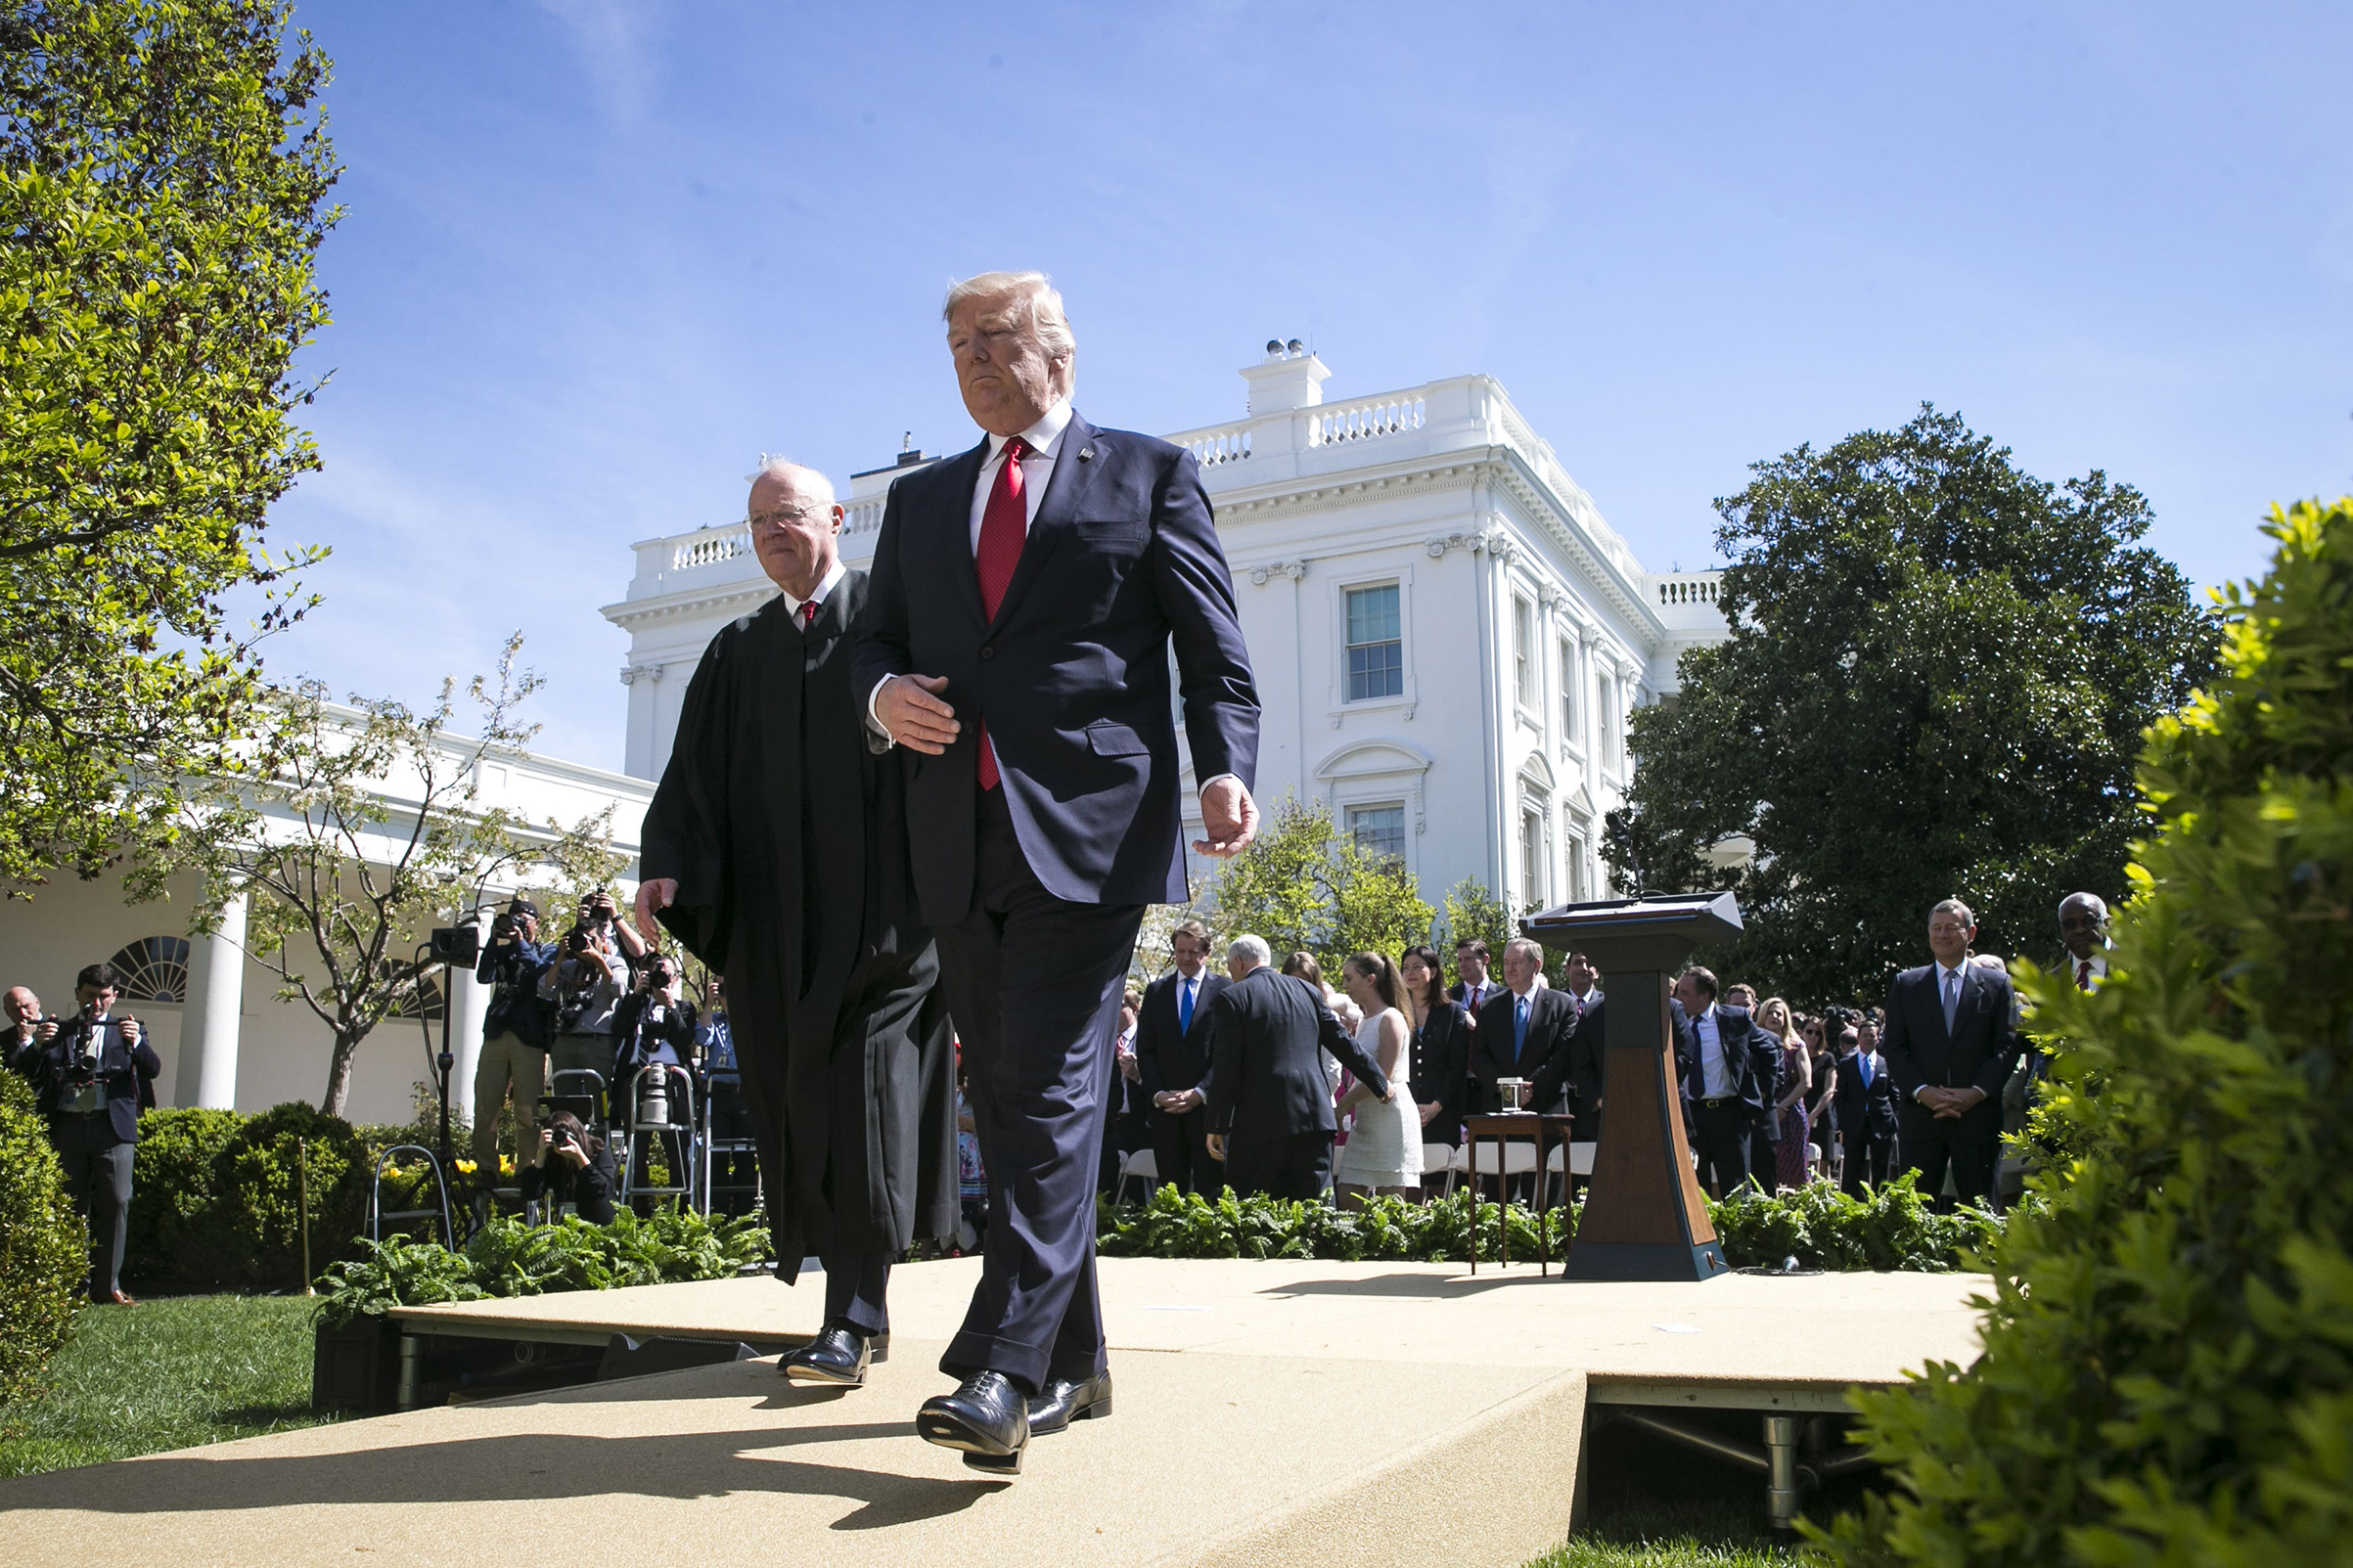 Anthony Kennedy leaves the Rose Garden with President Donald Trump April 10, 2017, after swearing in Neil Gorsuch as the 113th Supreme Court Justice.